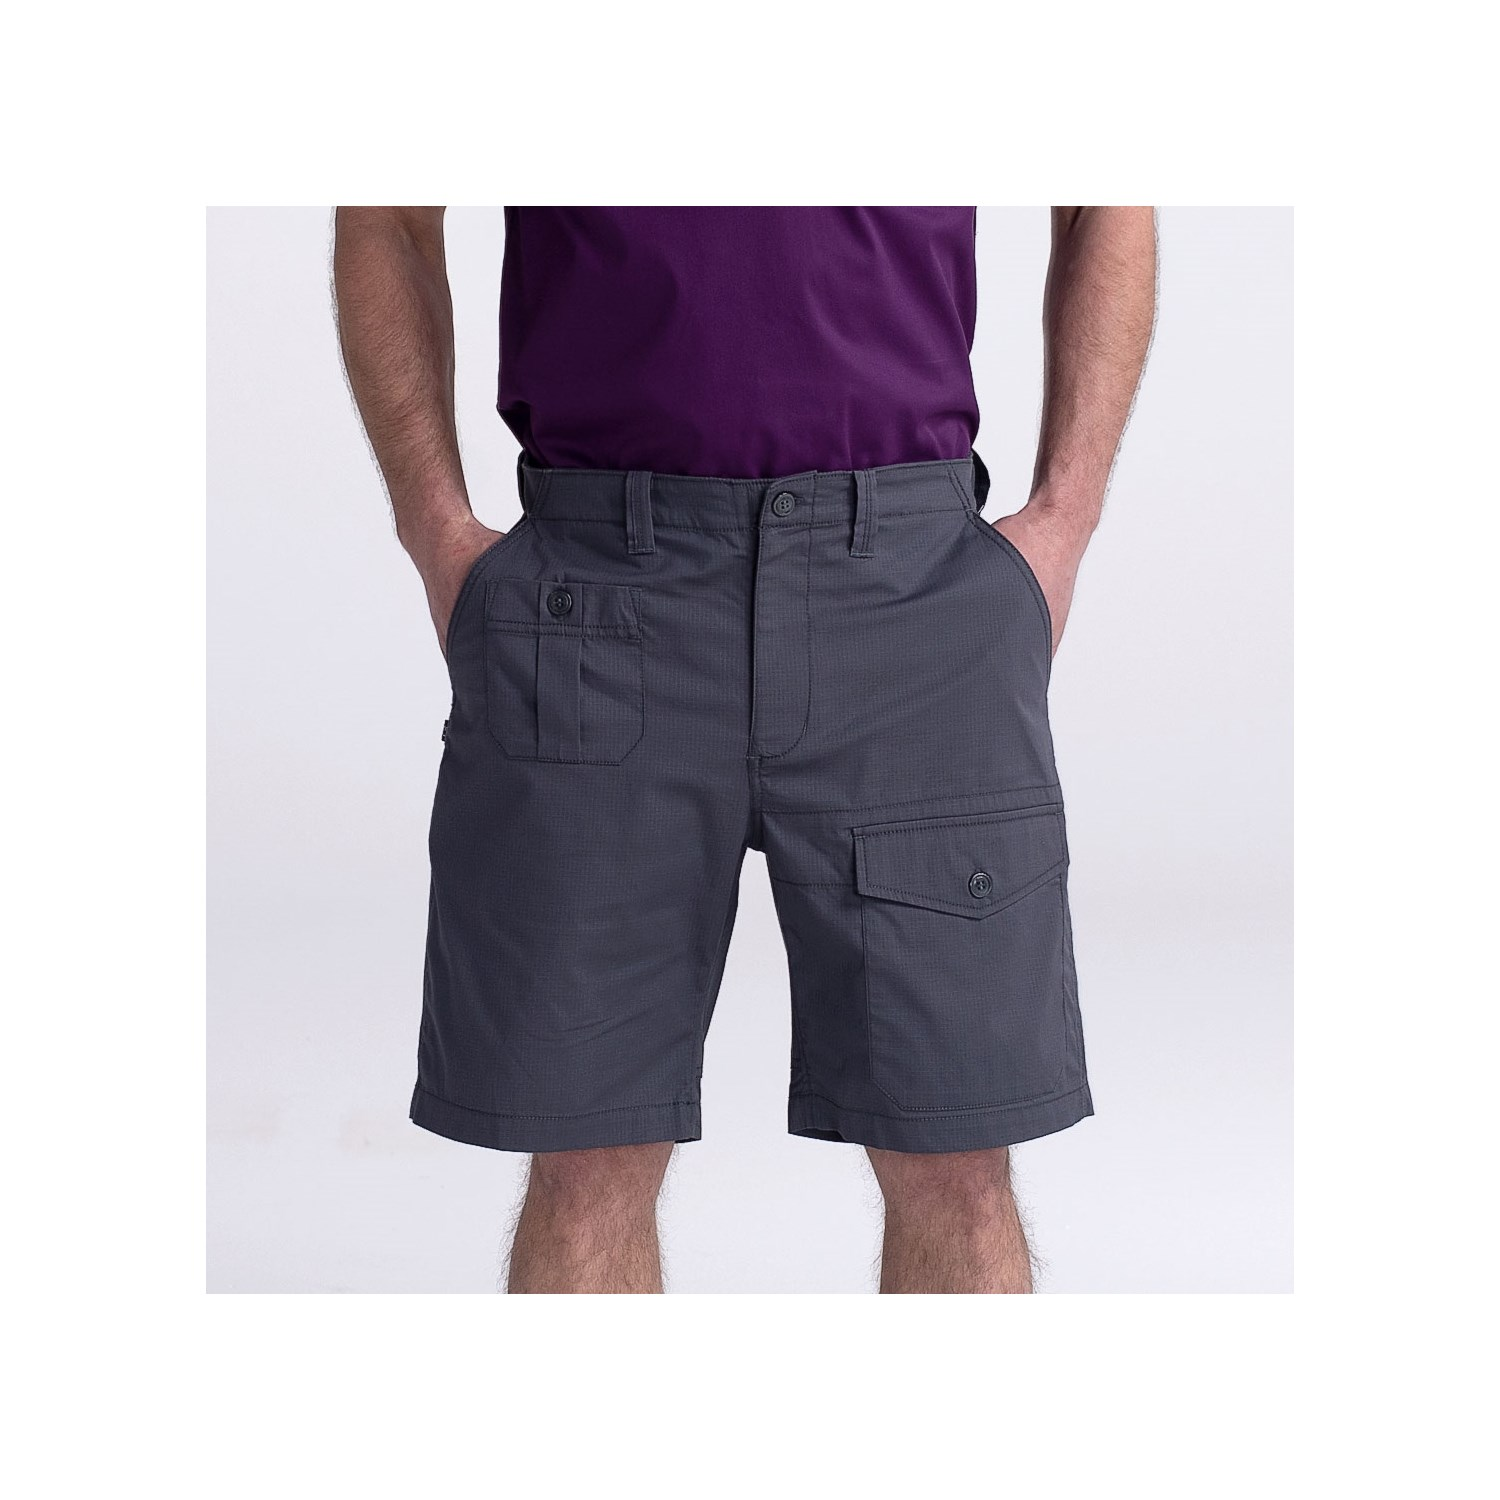 Men's Stretch Cargo Chef Short (CW3820) - Color Gray - Front View